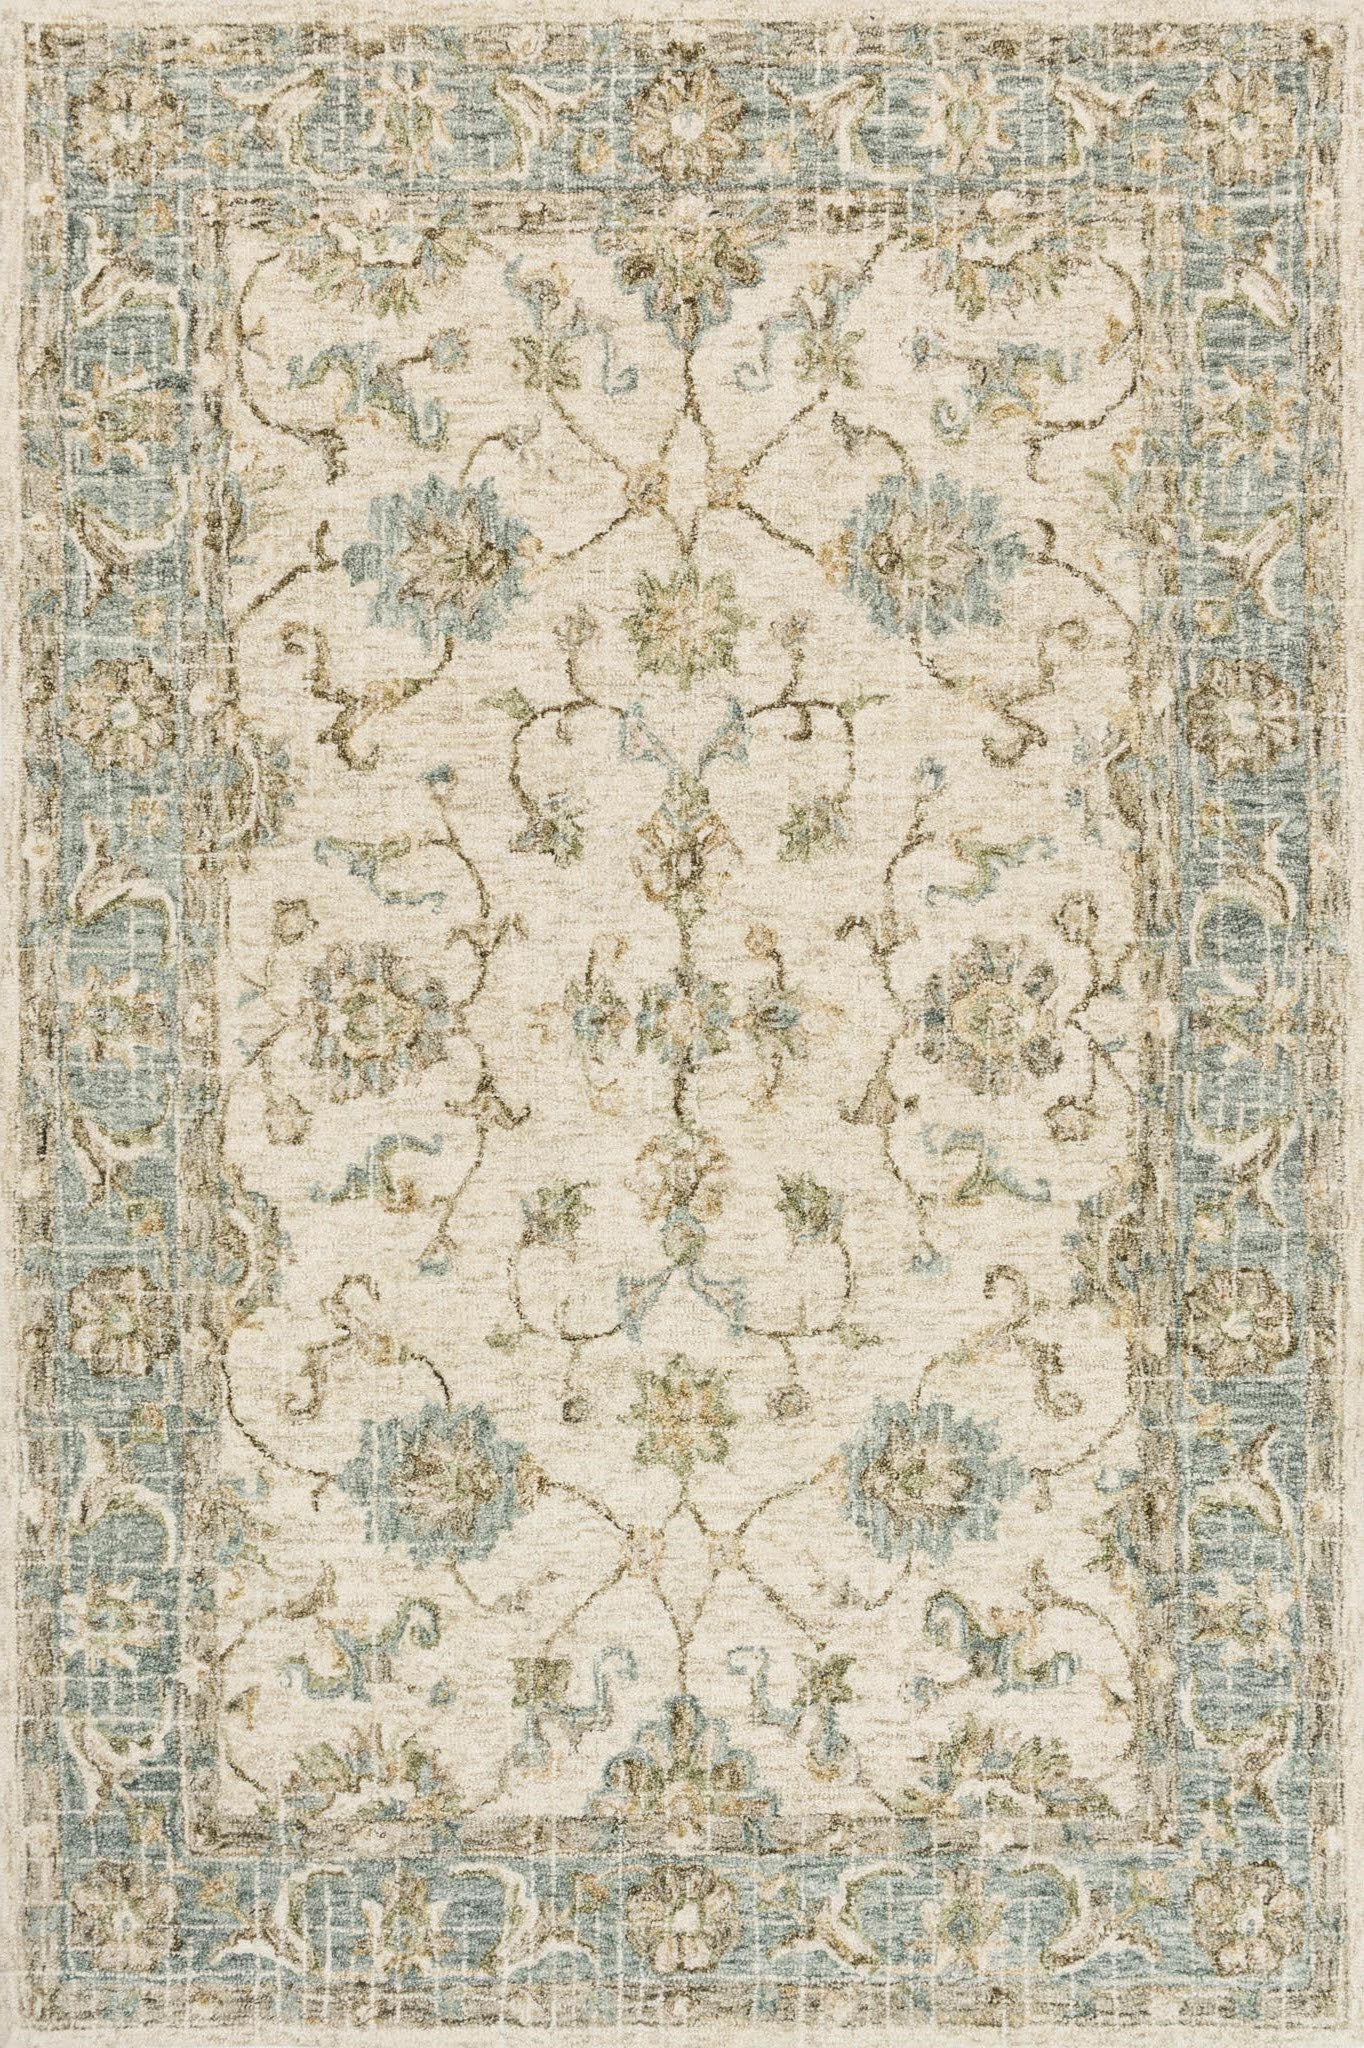 Loloi Julian JI-06 Ivory/Spa Area Rug main image